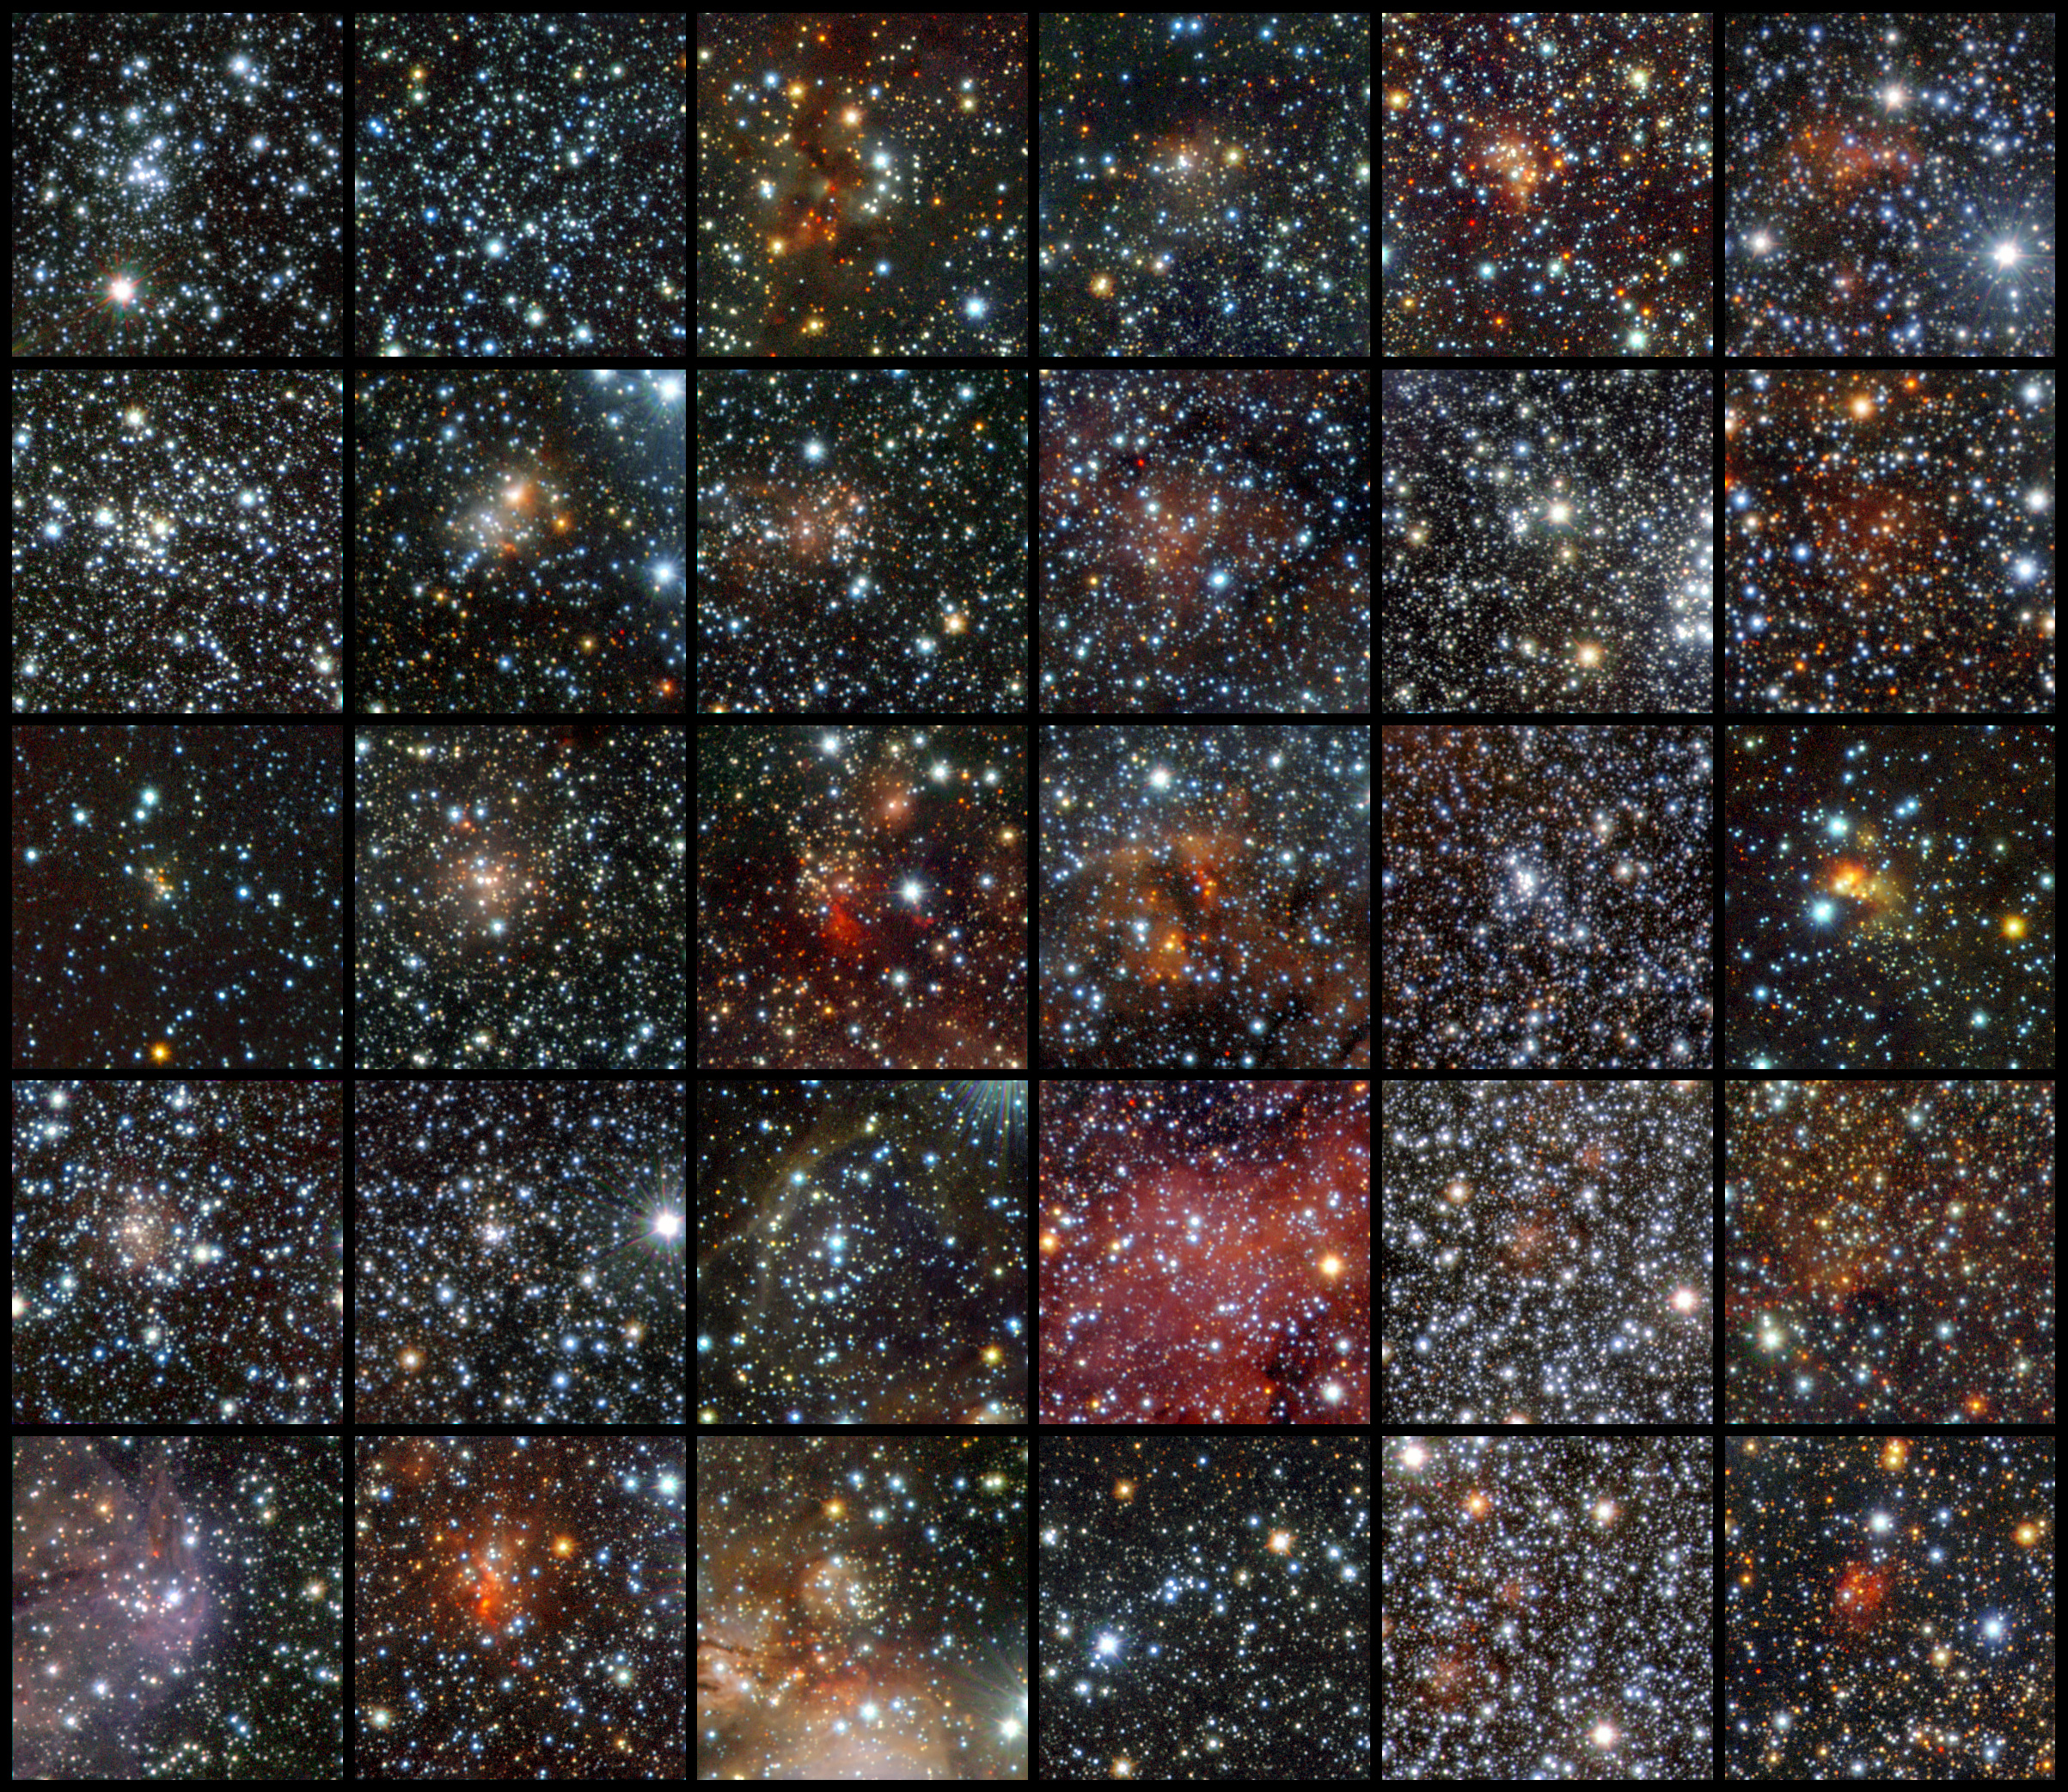 96 Hidden Star Clusters Discovered by Dust-Piercing Telescope